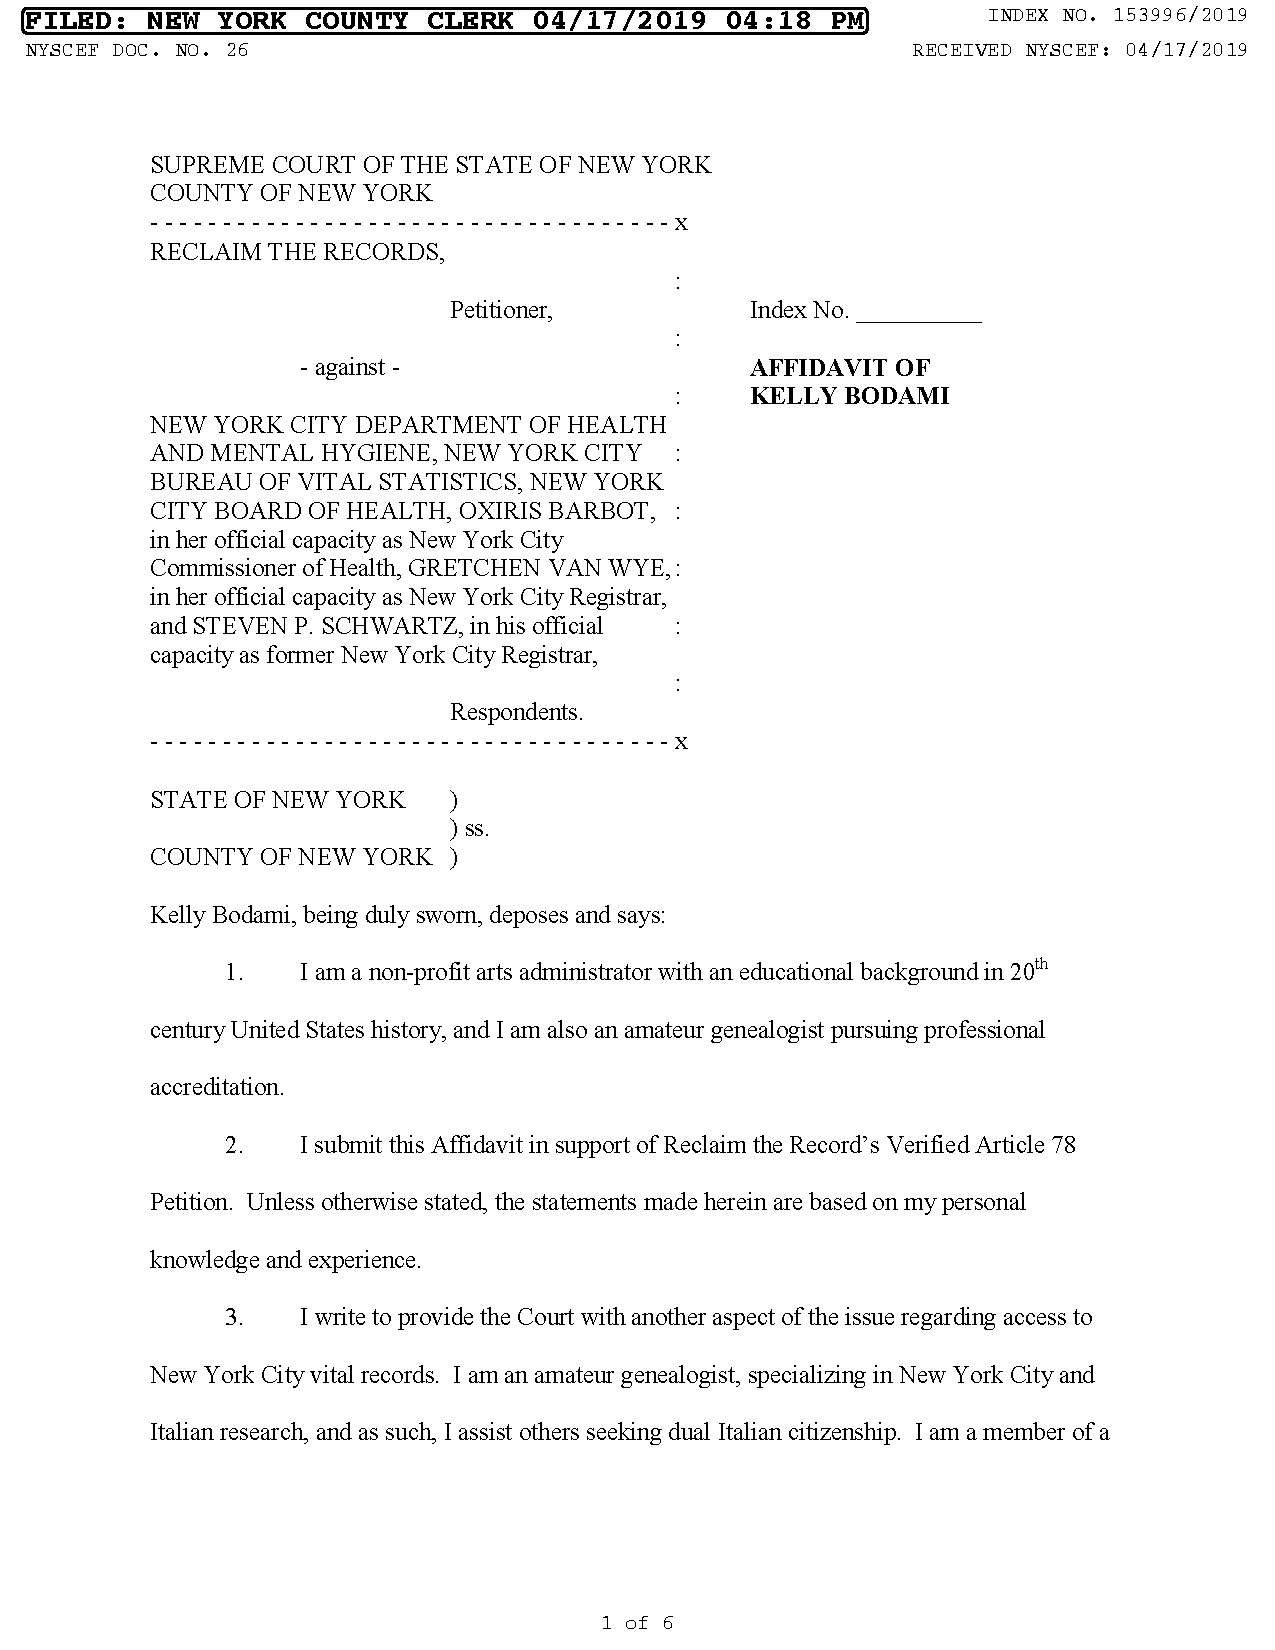 Affidavit #4 - Kelly Bodami, on the NYC DOH blocking people from their lawfully entitled citizenship